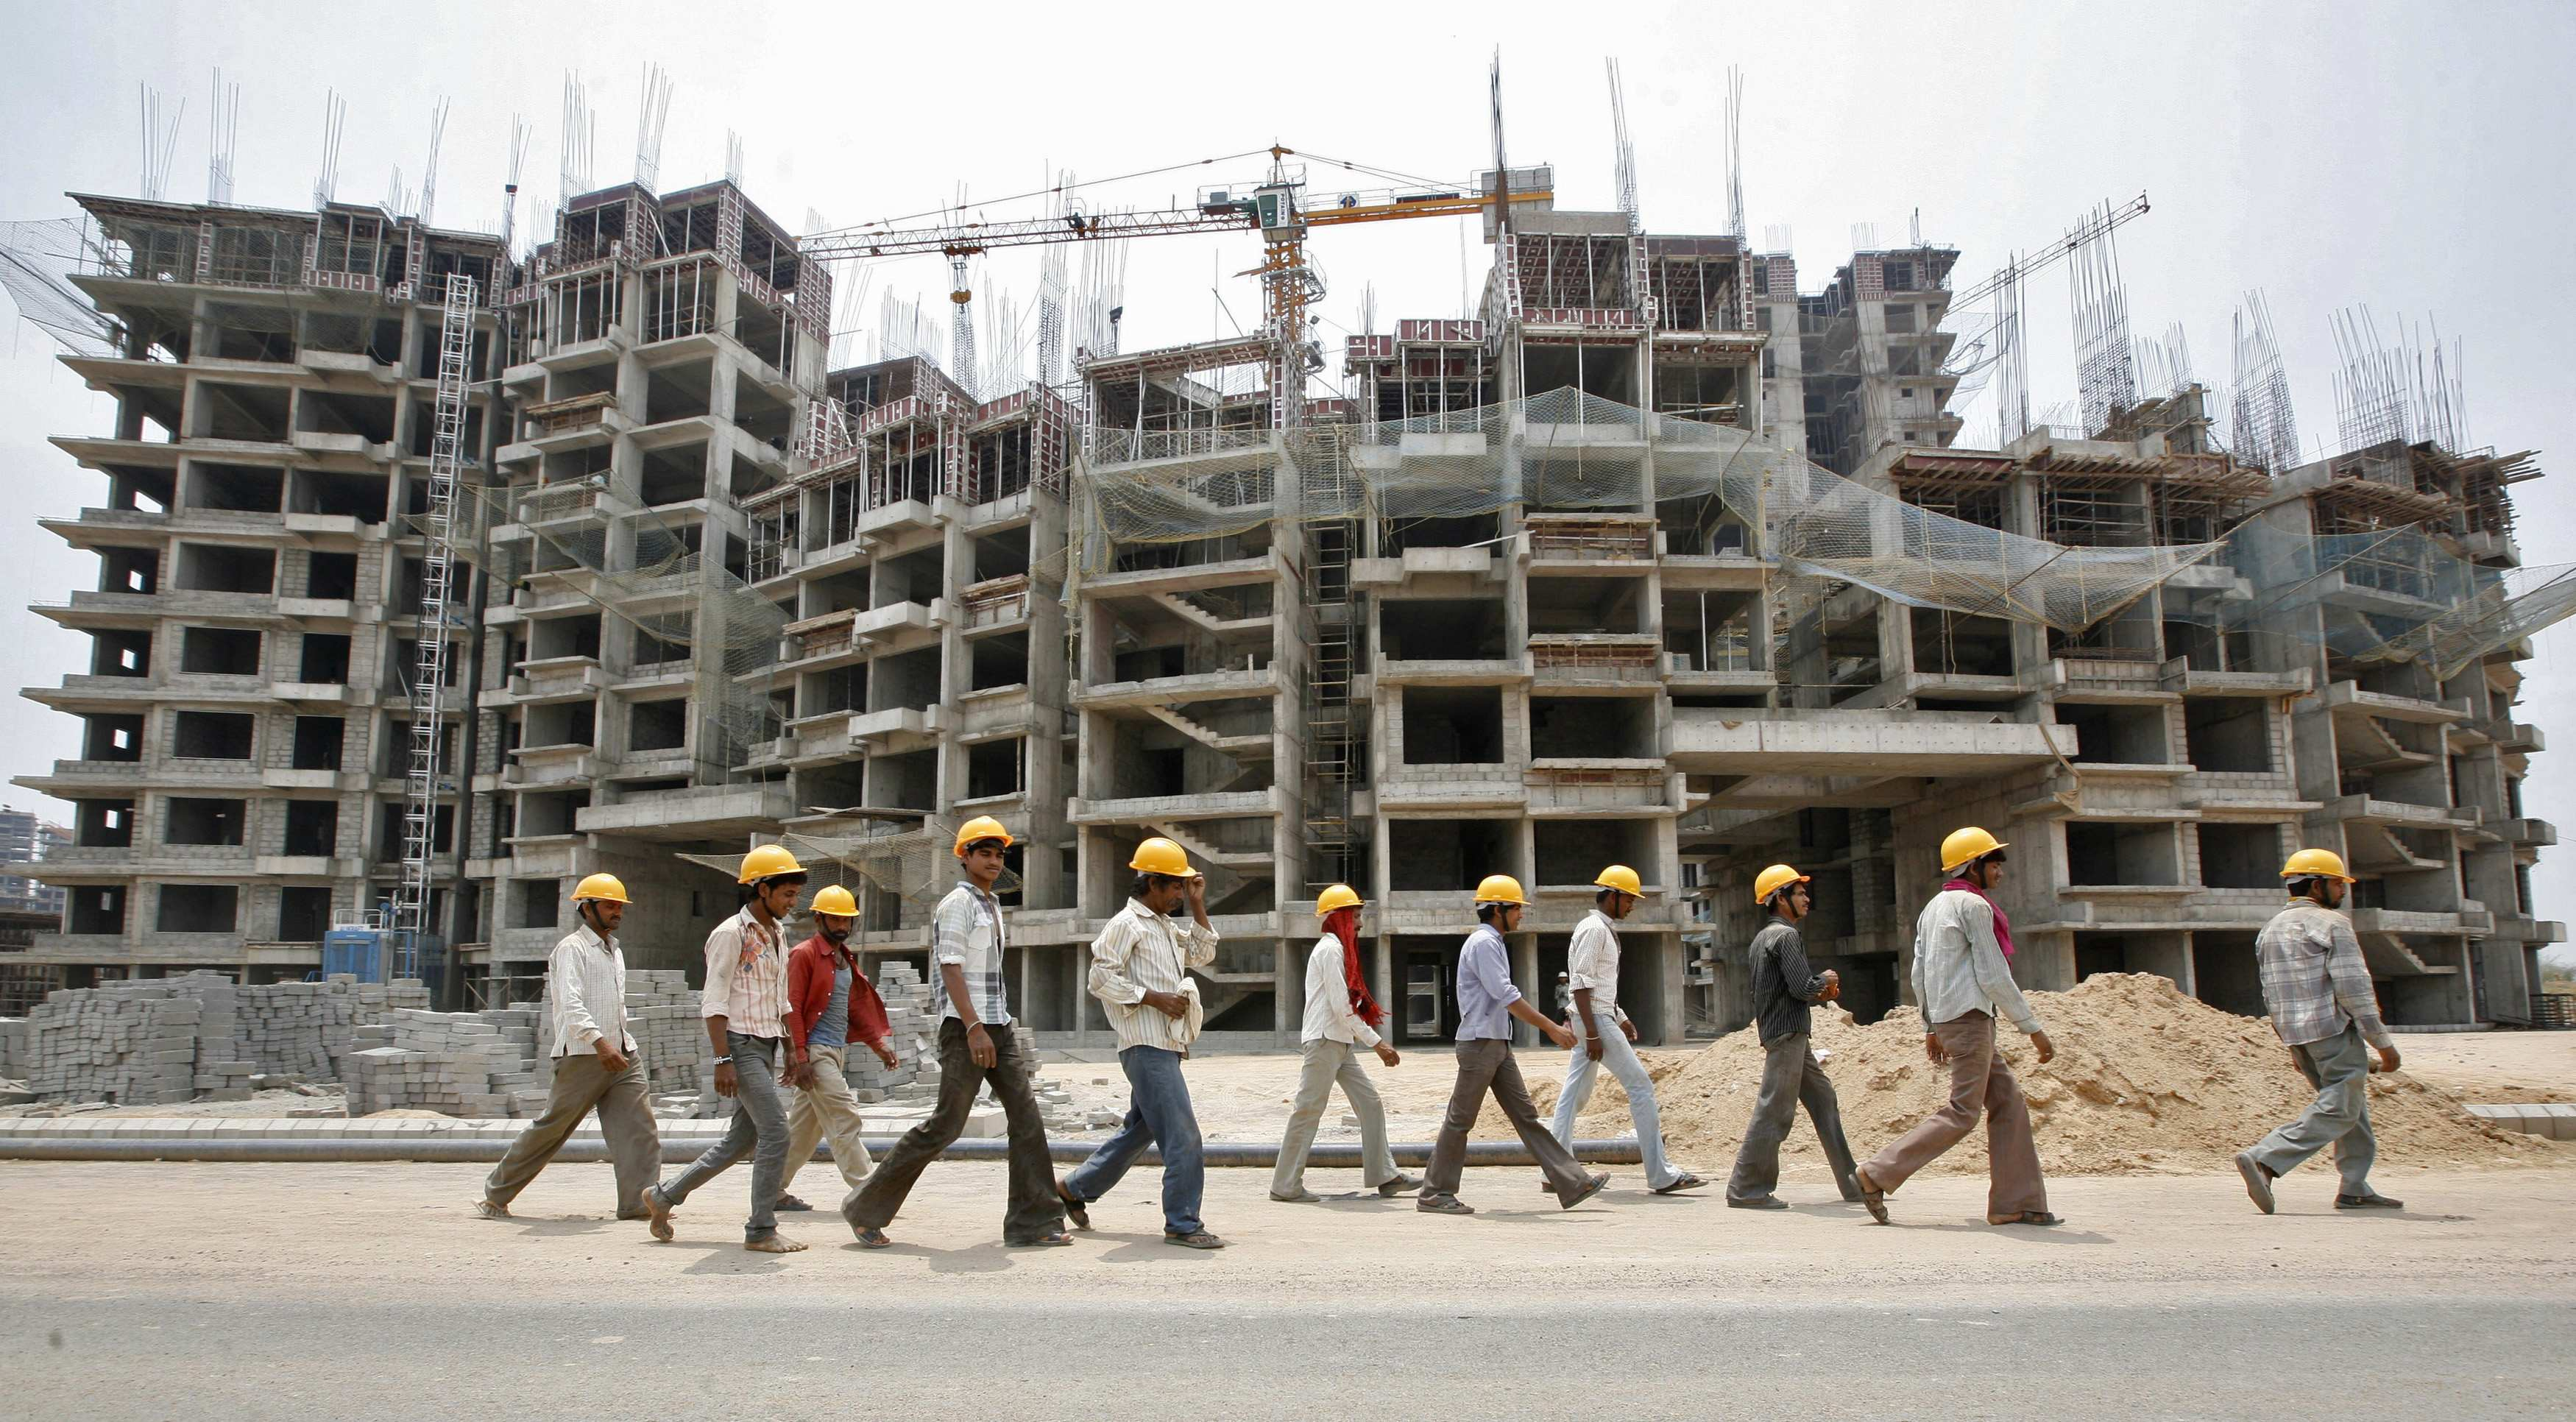 File picture shows workers walking in front of the construction site of a commercial complex on the outskirts of Ahmedabad